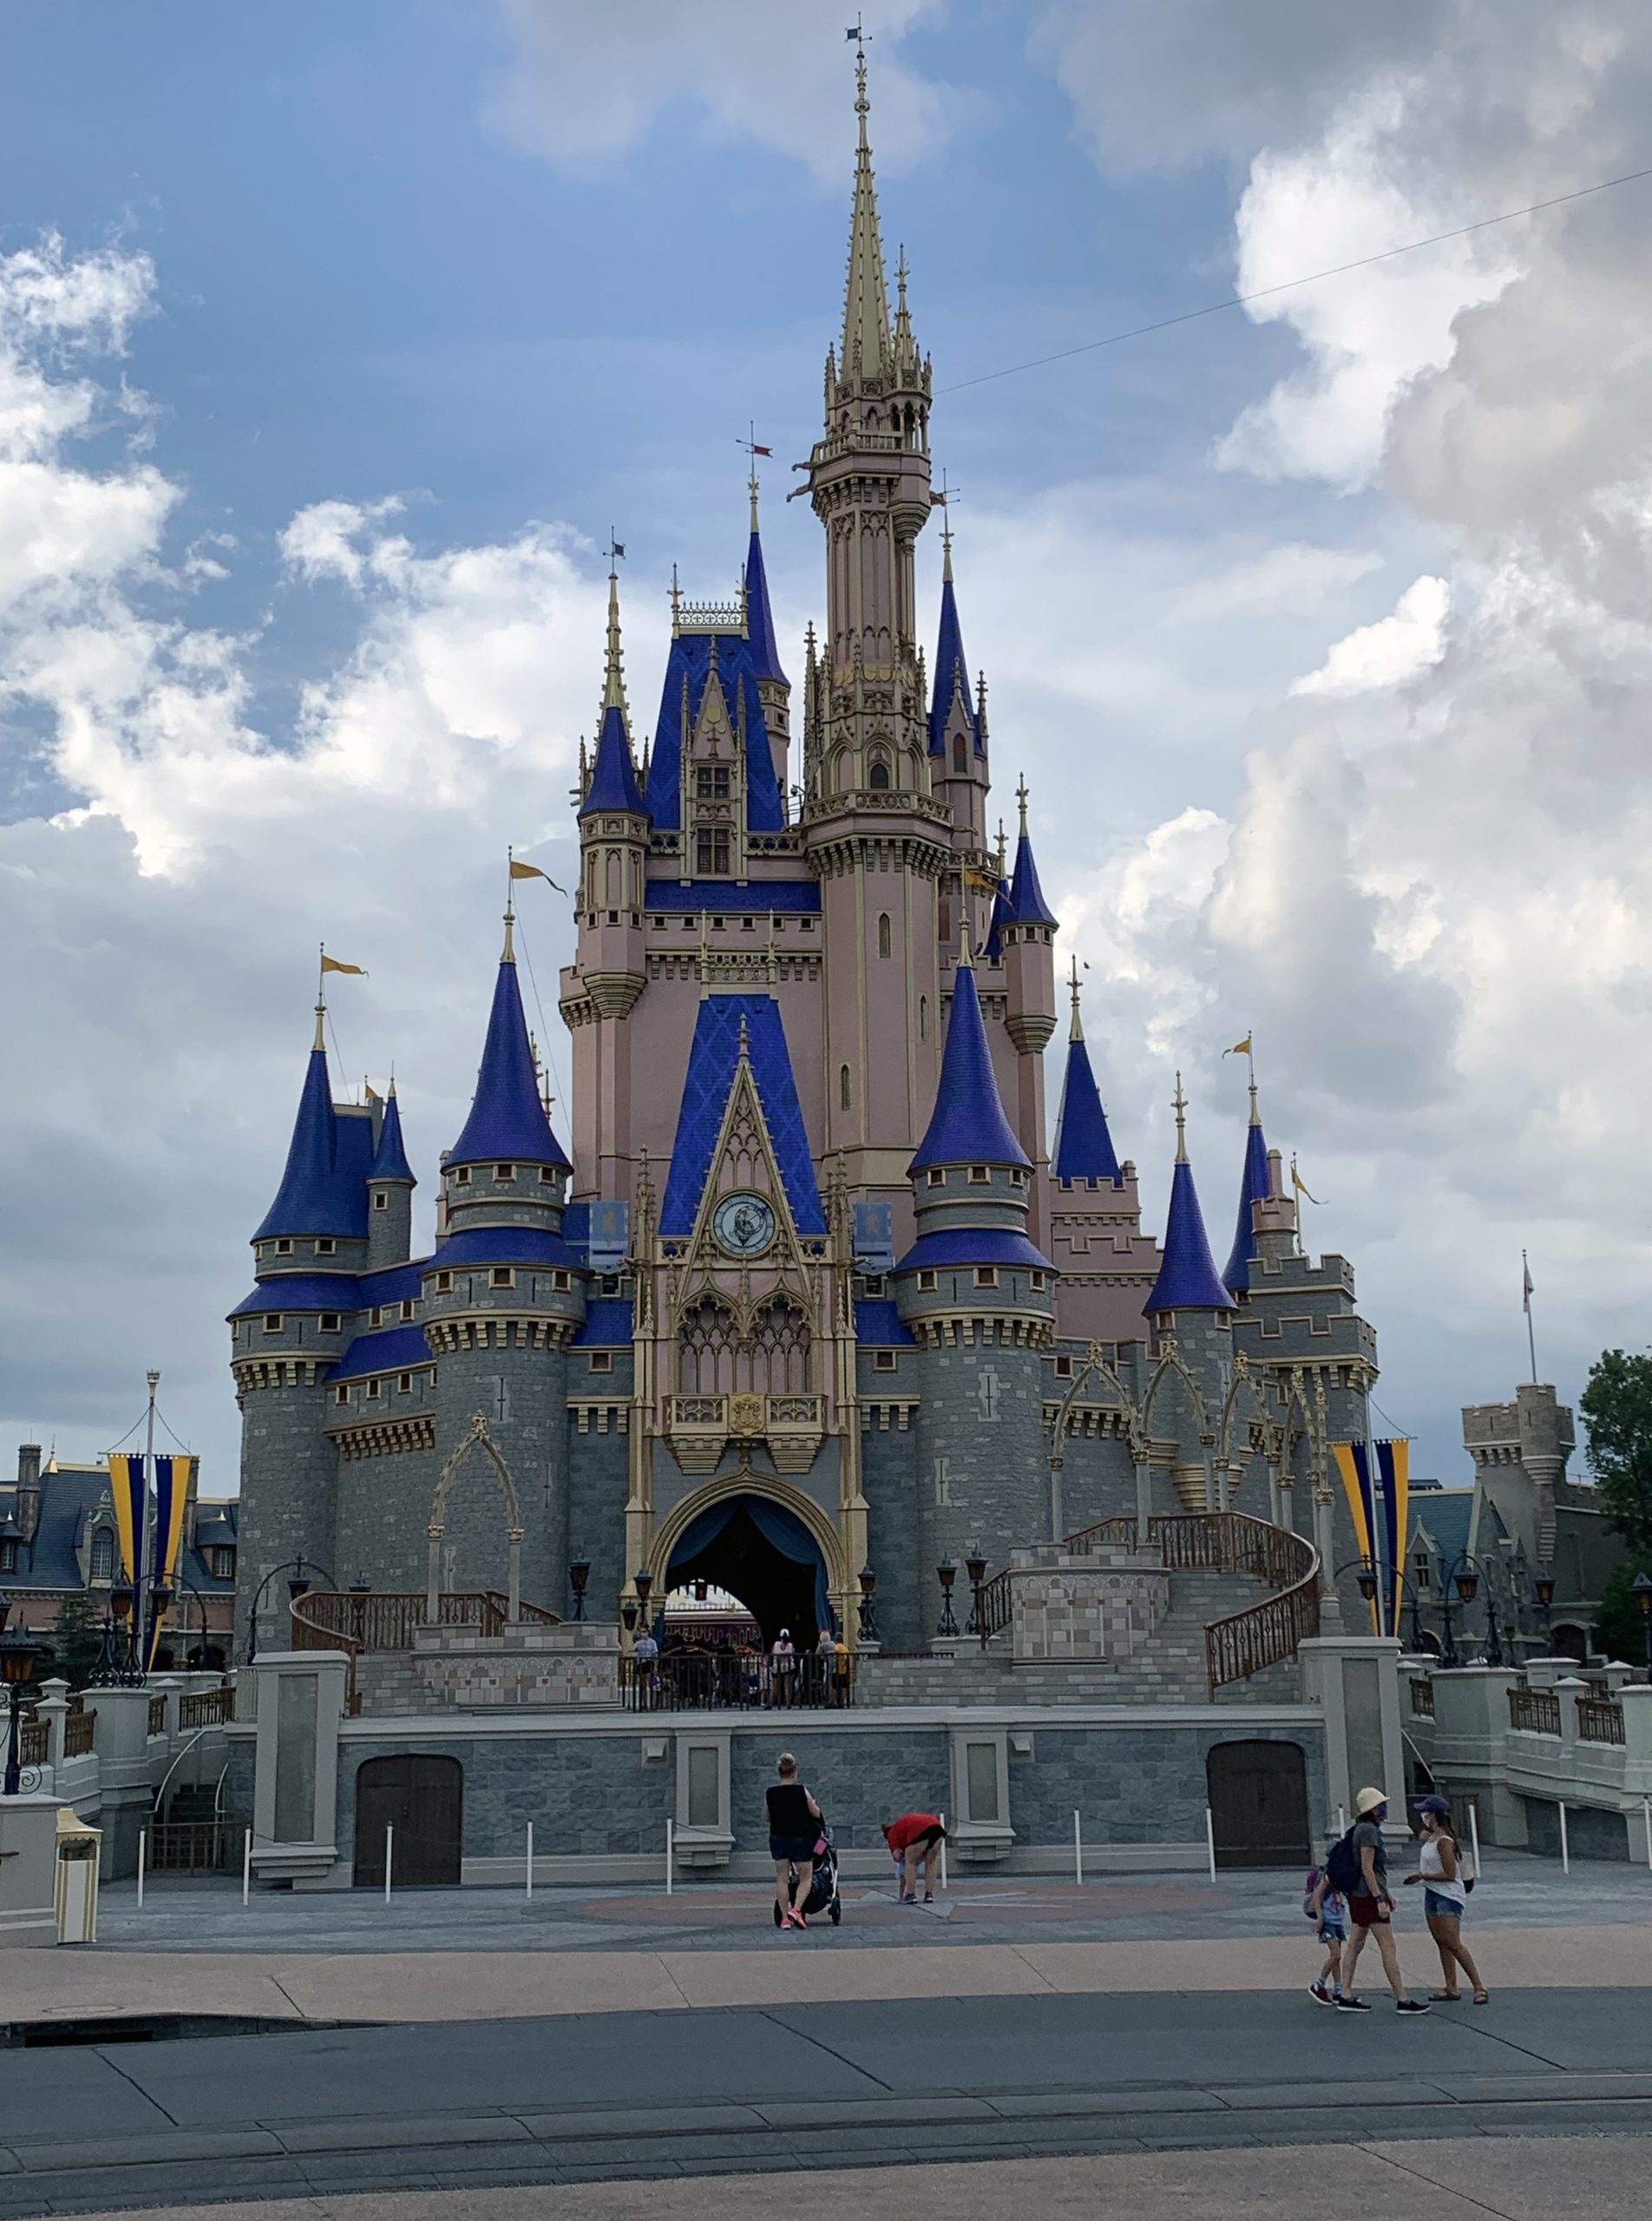 Cinderella's Castle at Walt Disney World Orlando with updated paint scheme